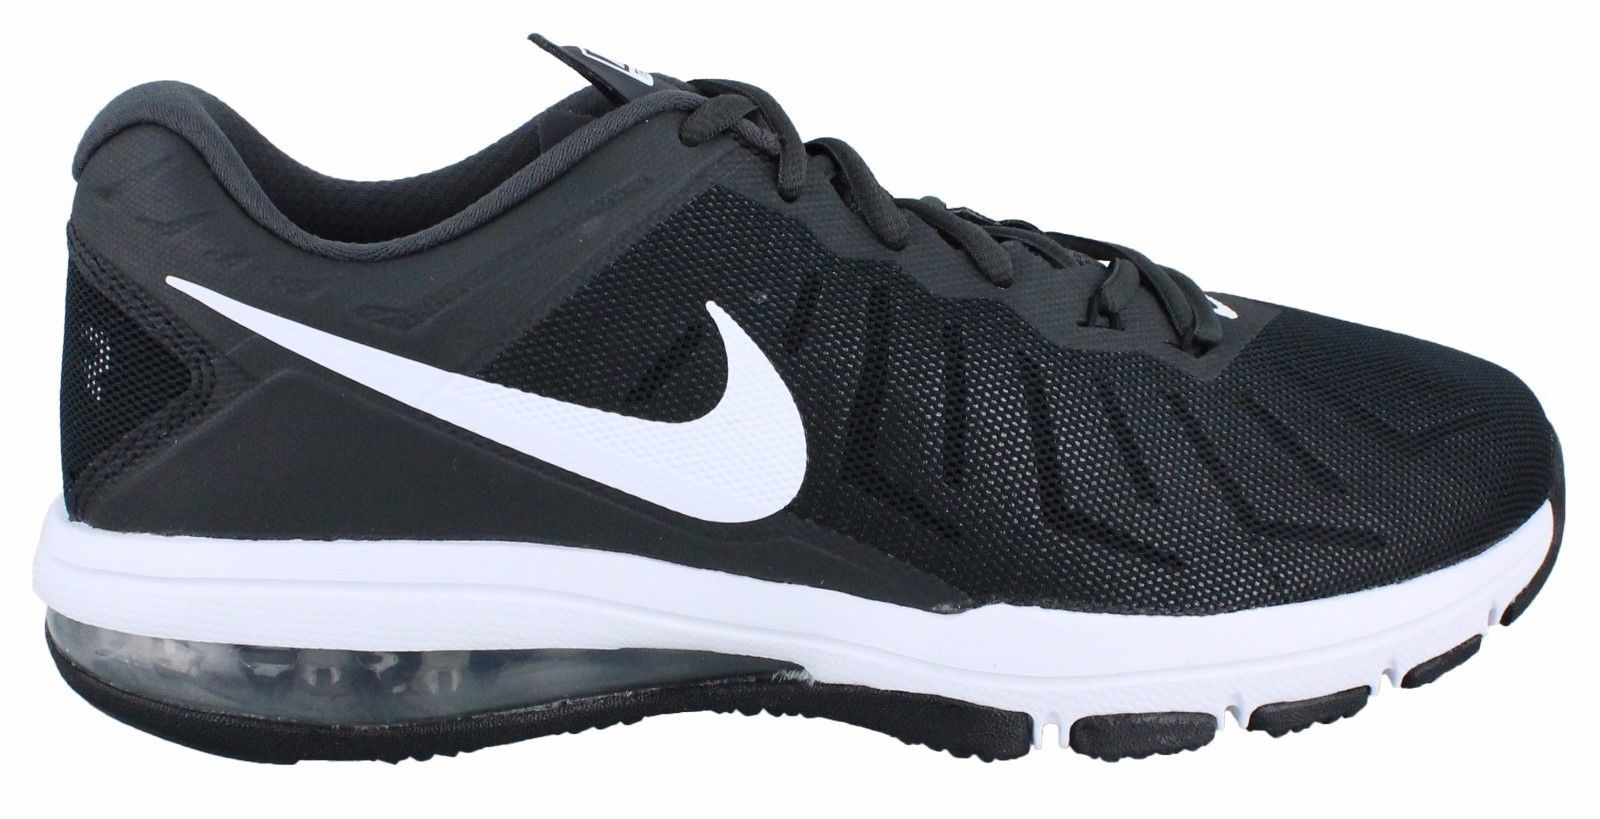 the latest c6230 6a072 Nike Men s Air Max Full Ride TR Sneakers Size 8 to 12 us 819004 001